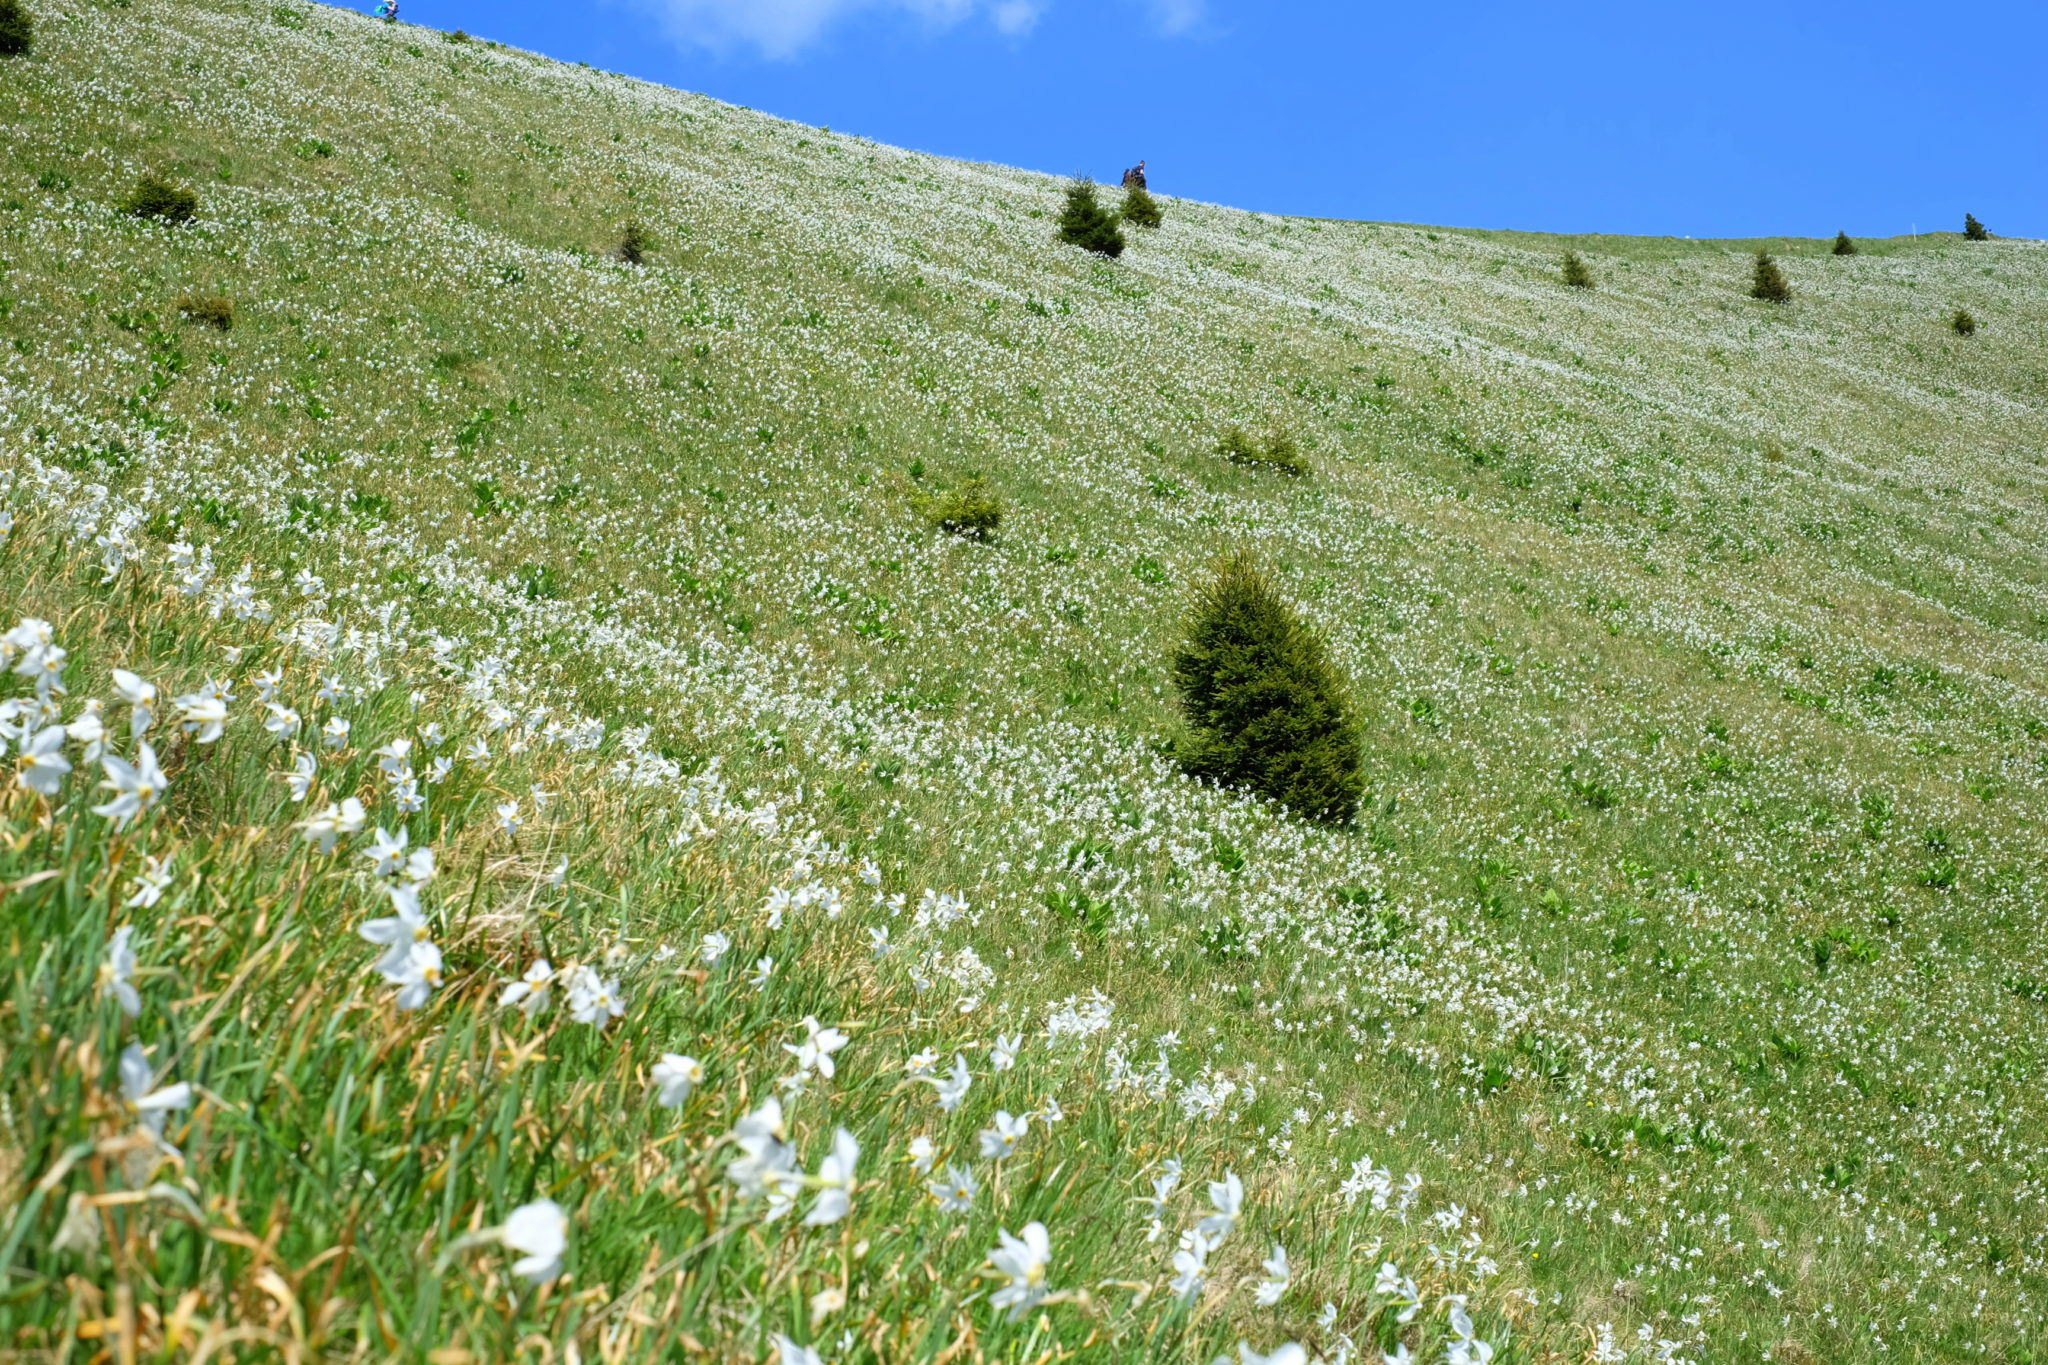 Endless fields of daffodils in the mountains; Golica, Slovenia, narcissi, narcise